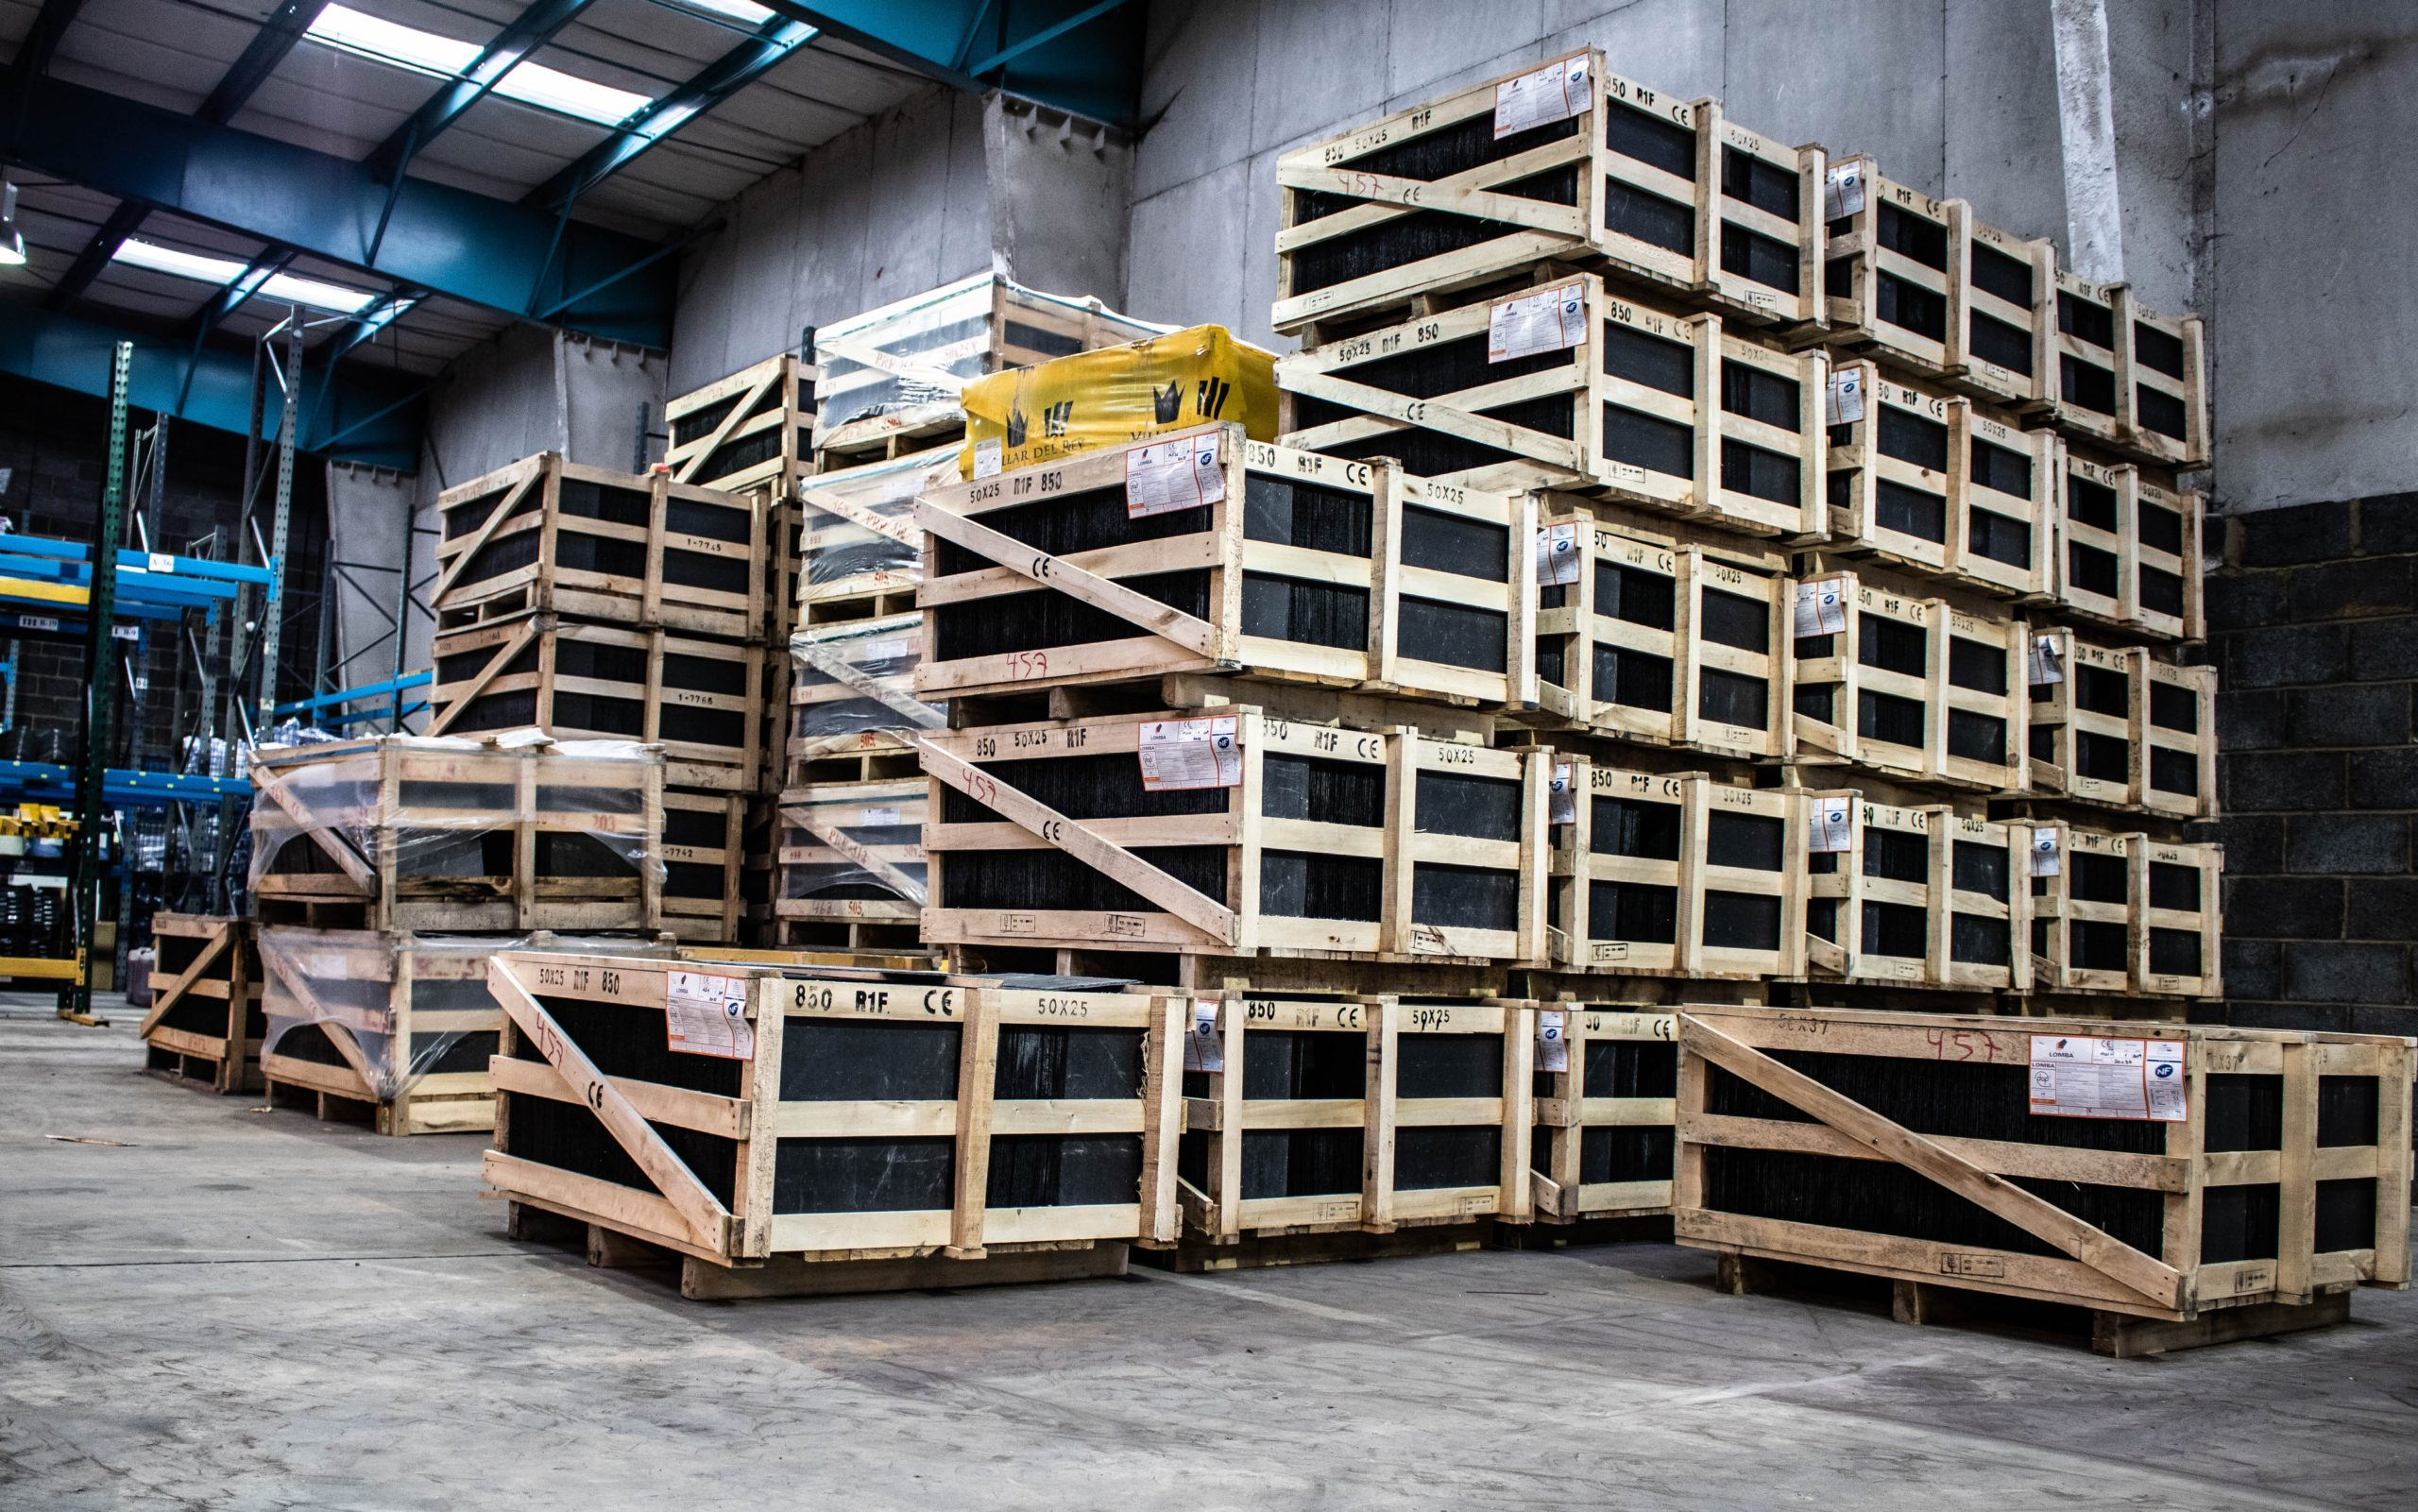 packing and freight companies